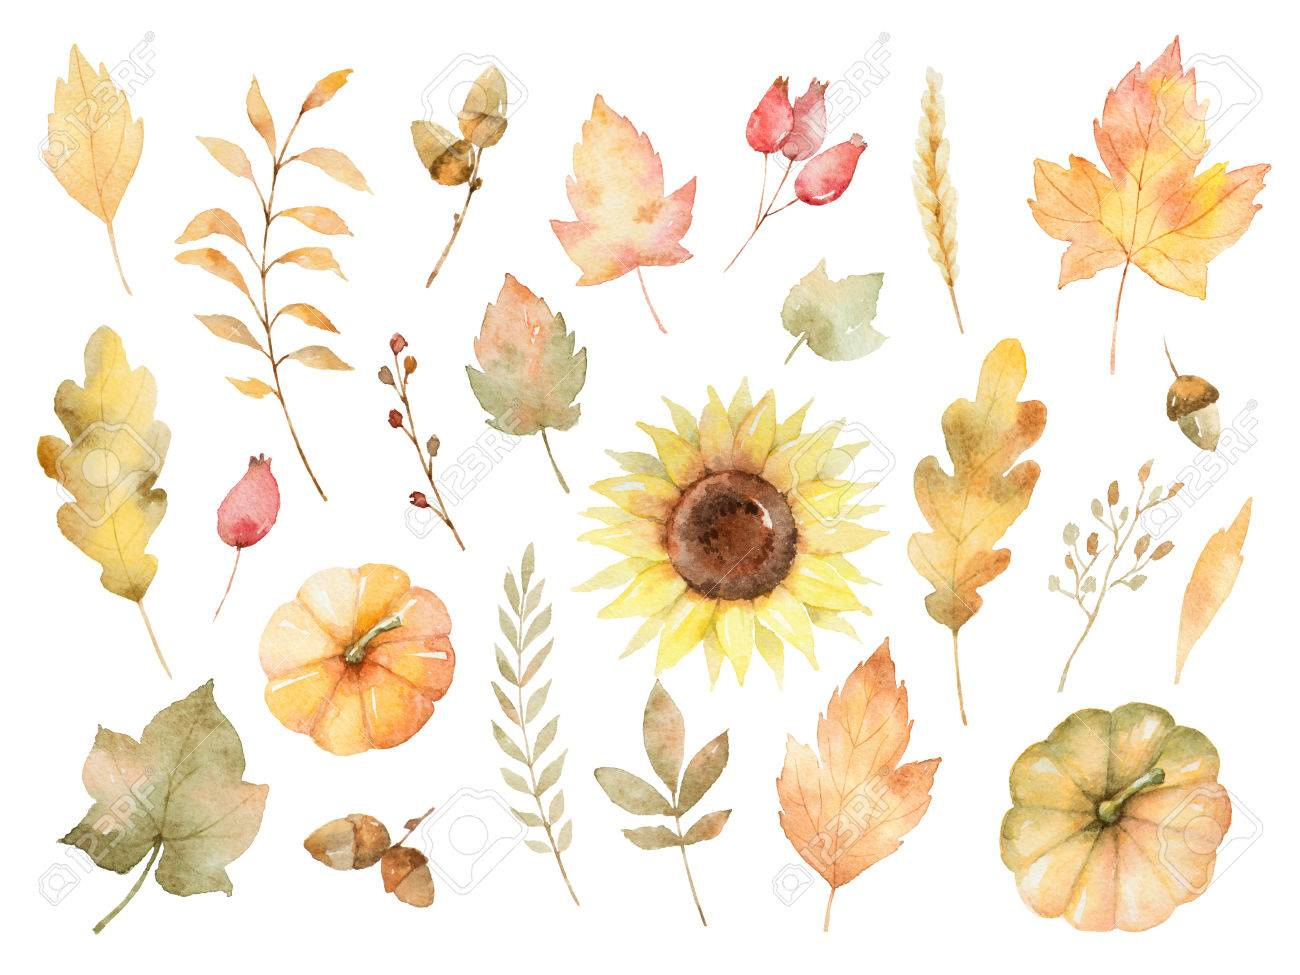 Watercolor autumn set of leaves, branches, flowers and pumpkins isolated on white background. - 82309735